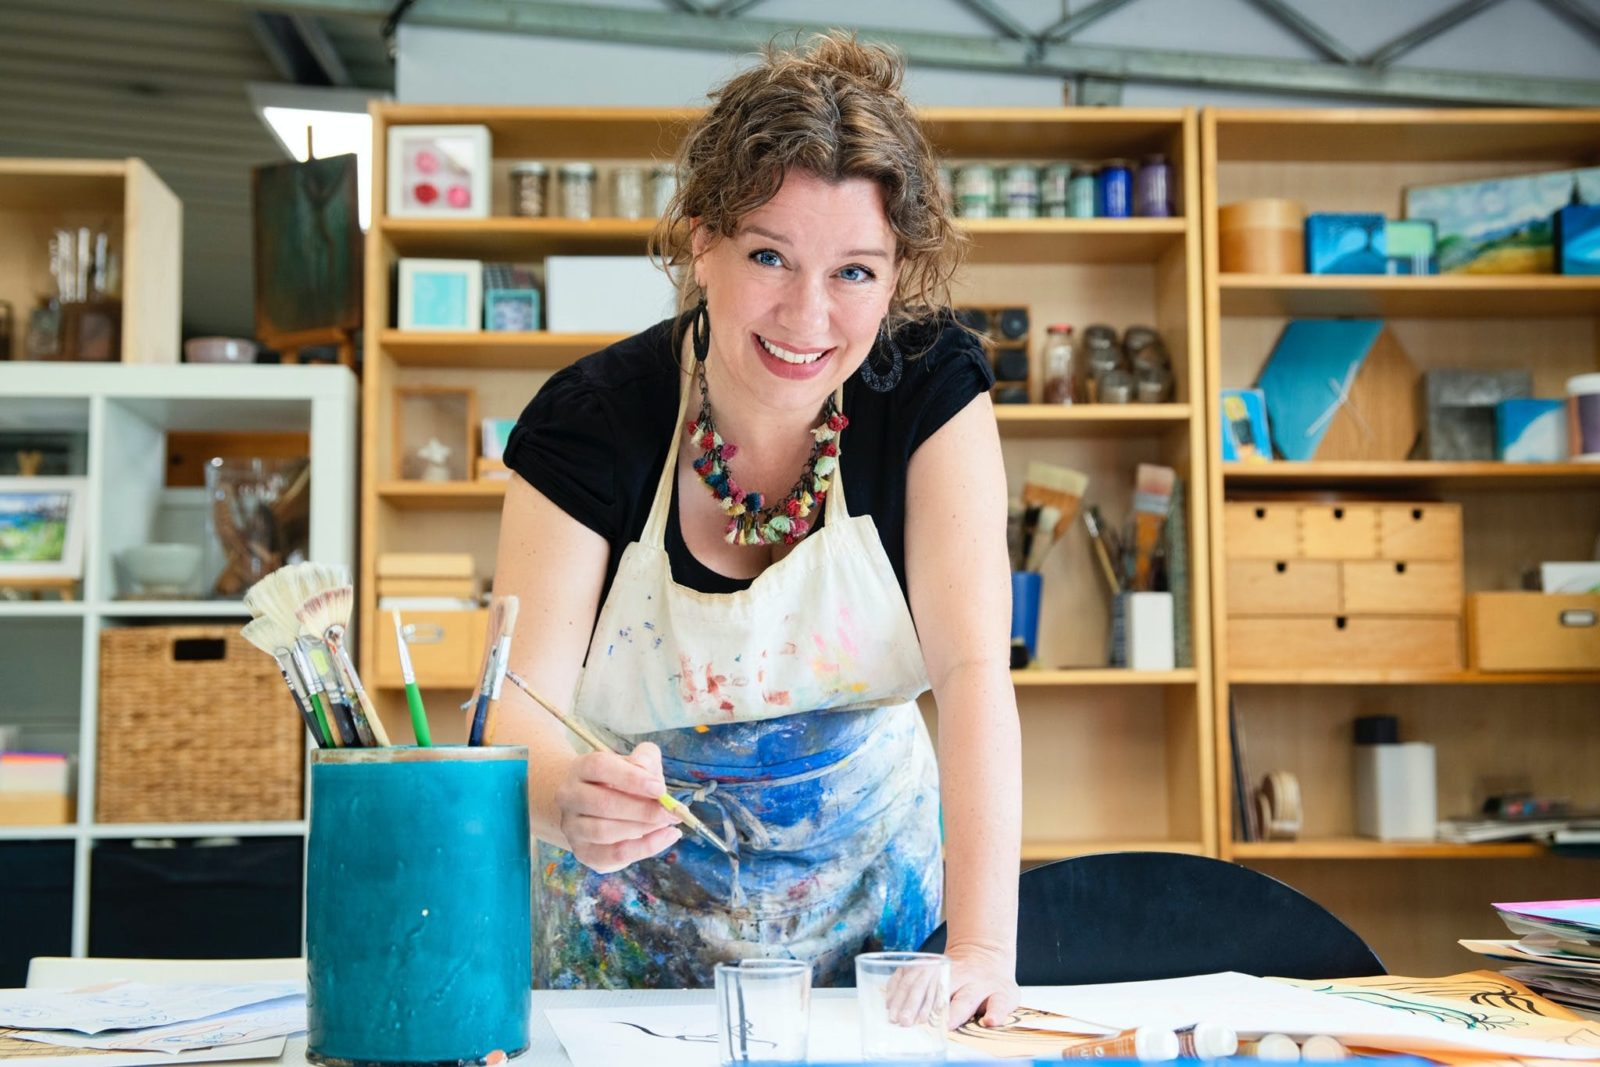 Vivianne painting in studio with bookcases behind her and a jug of brushes on the table